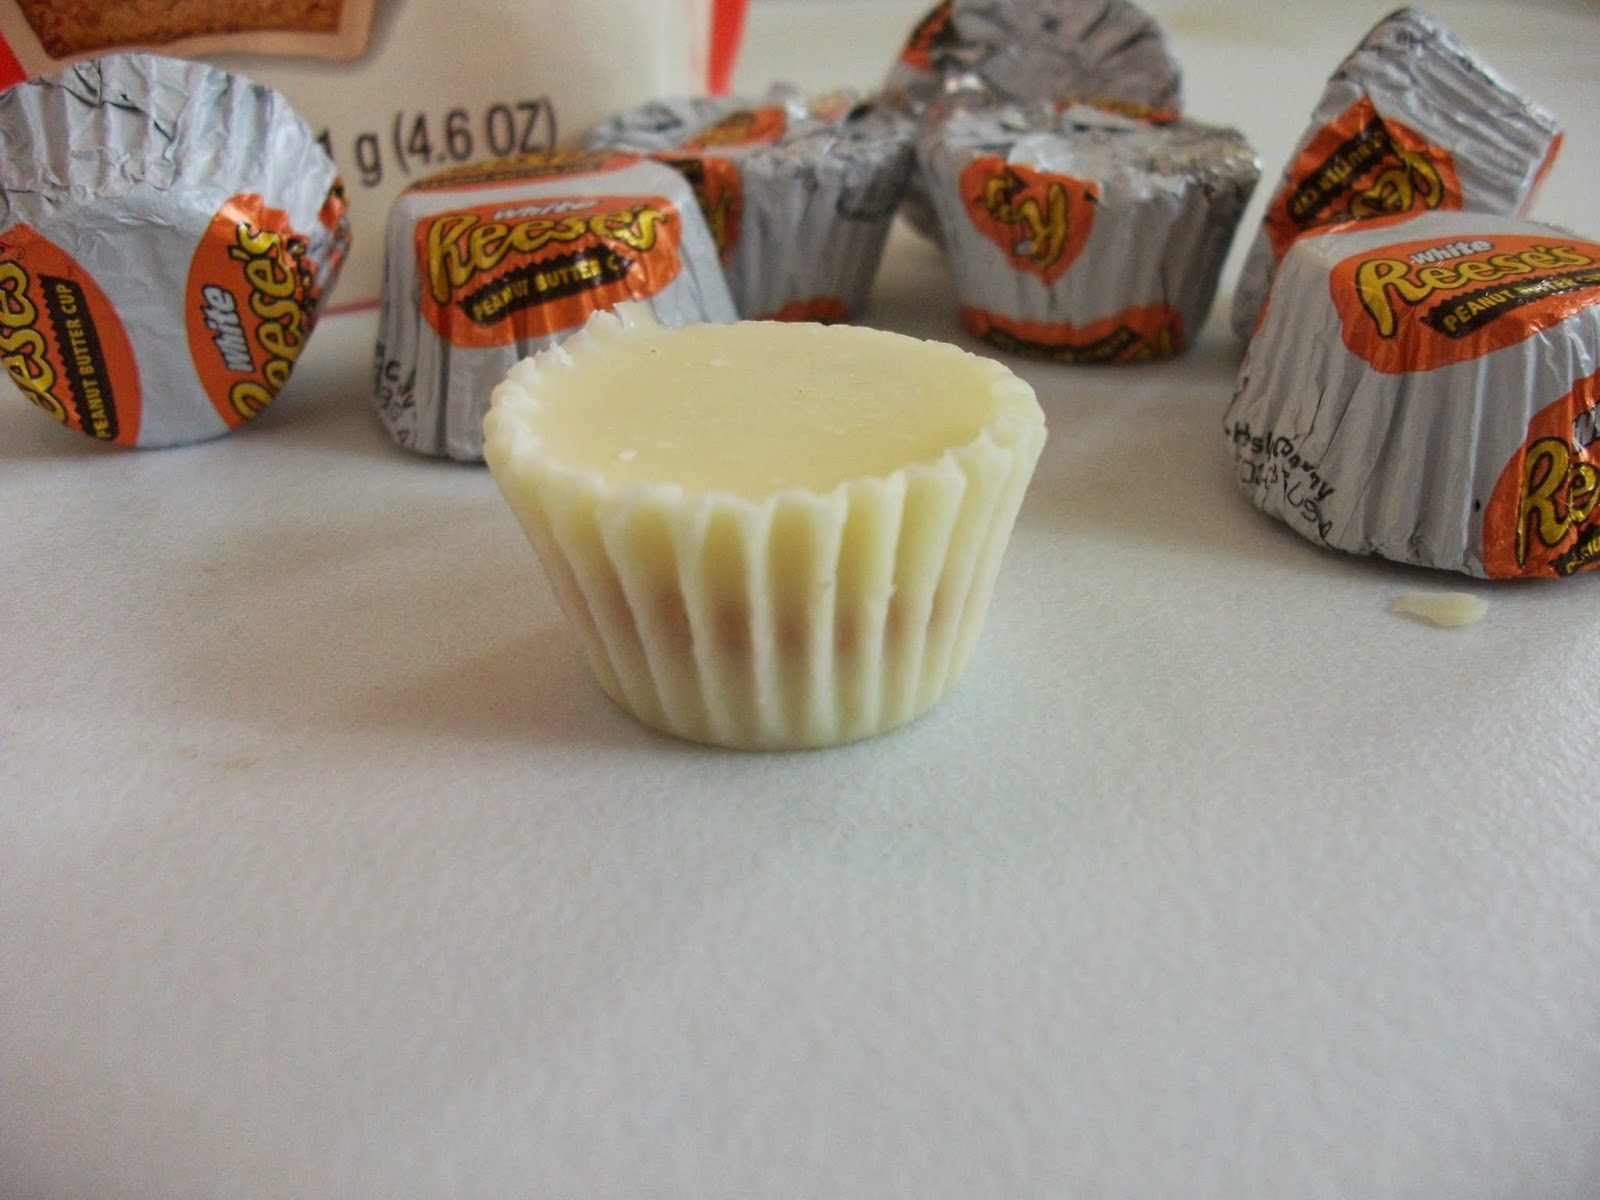 ... Reviews: Reese's White Chocolate Peanut Butter Cups Miniatures Review